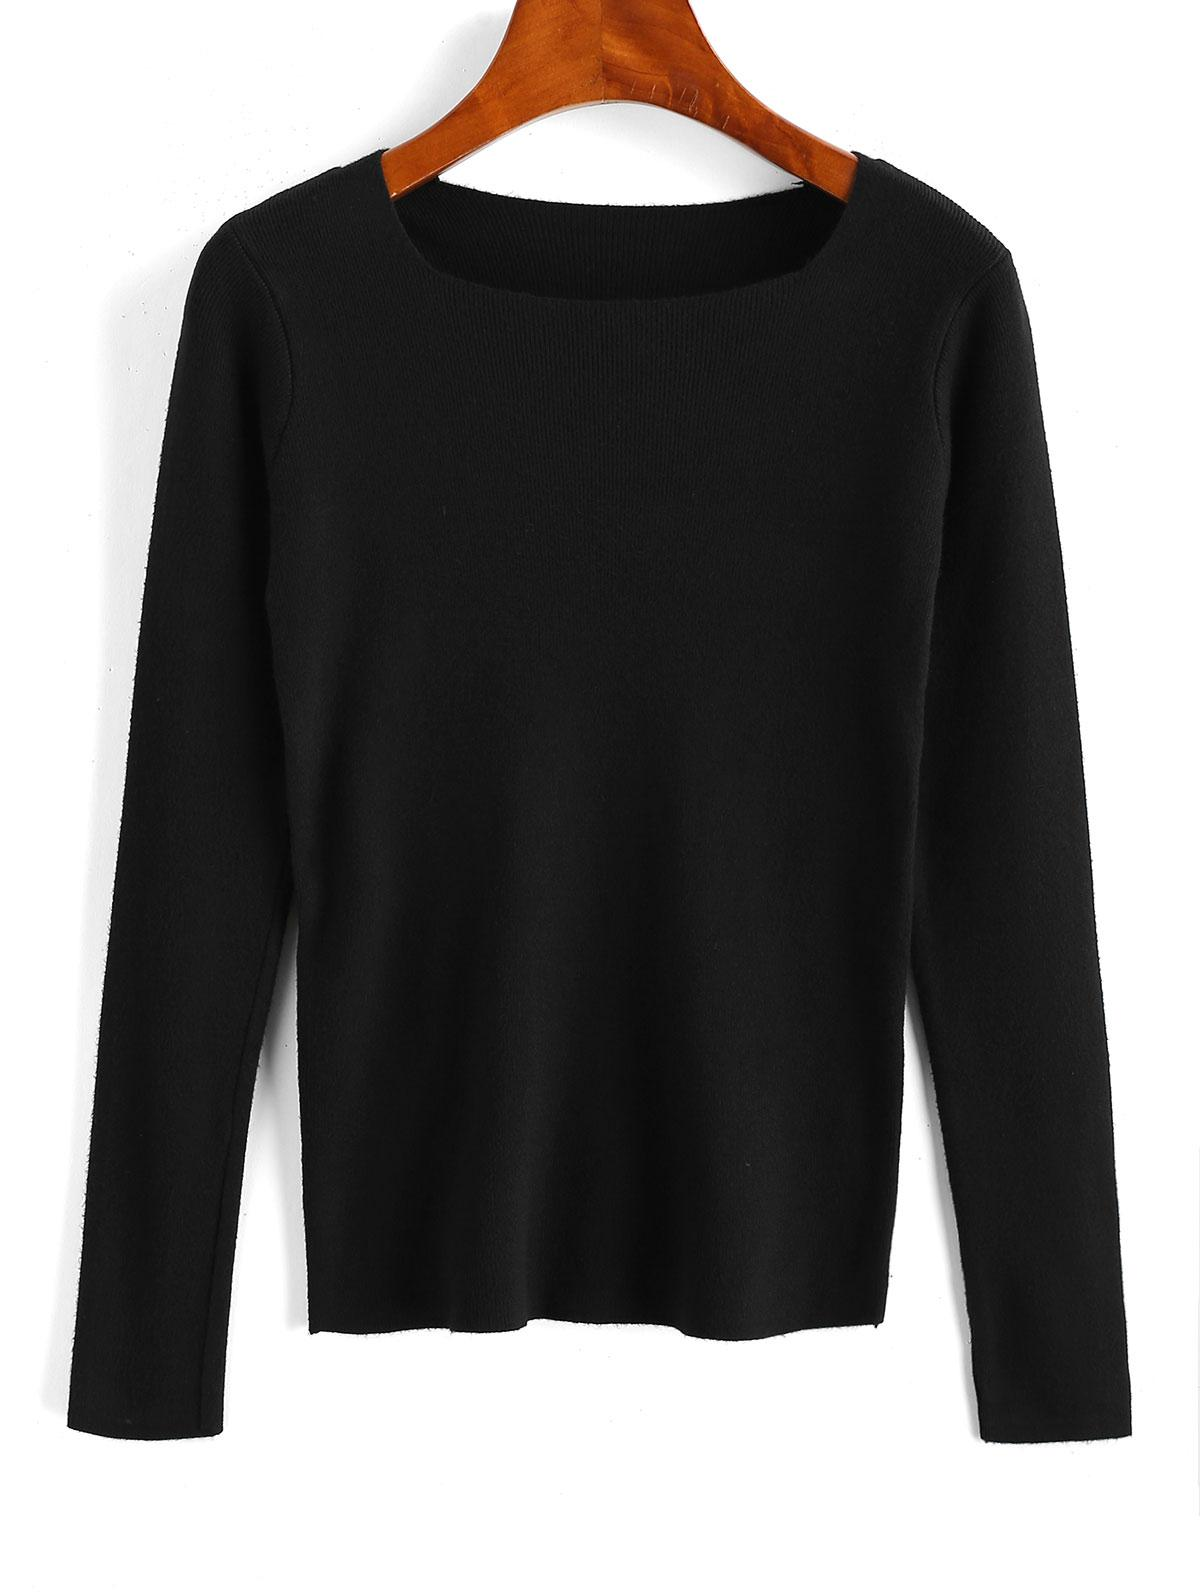 Slim Plain Jumper Knitwear